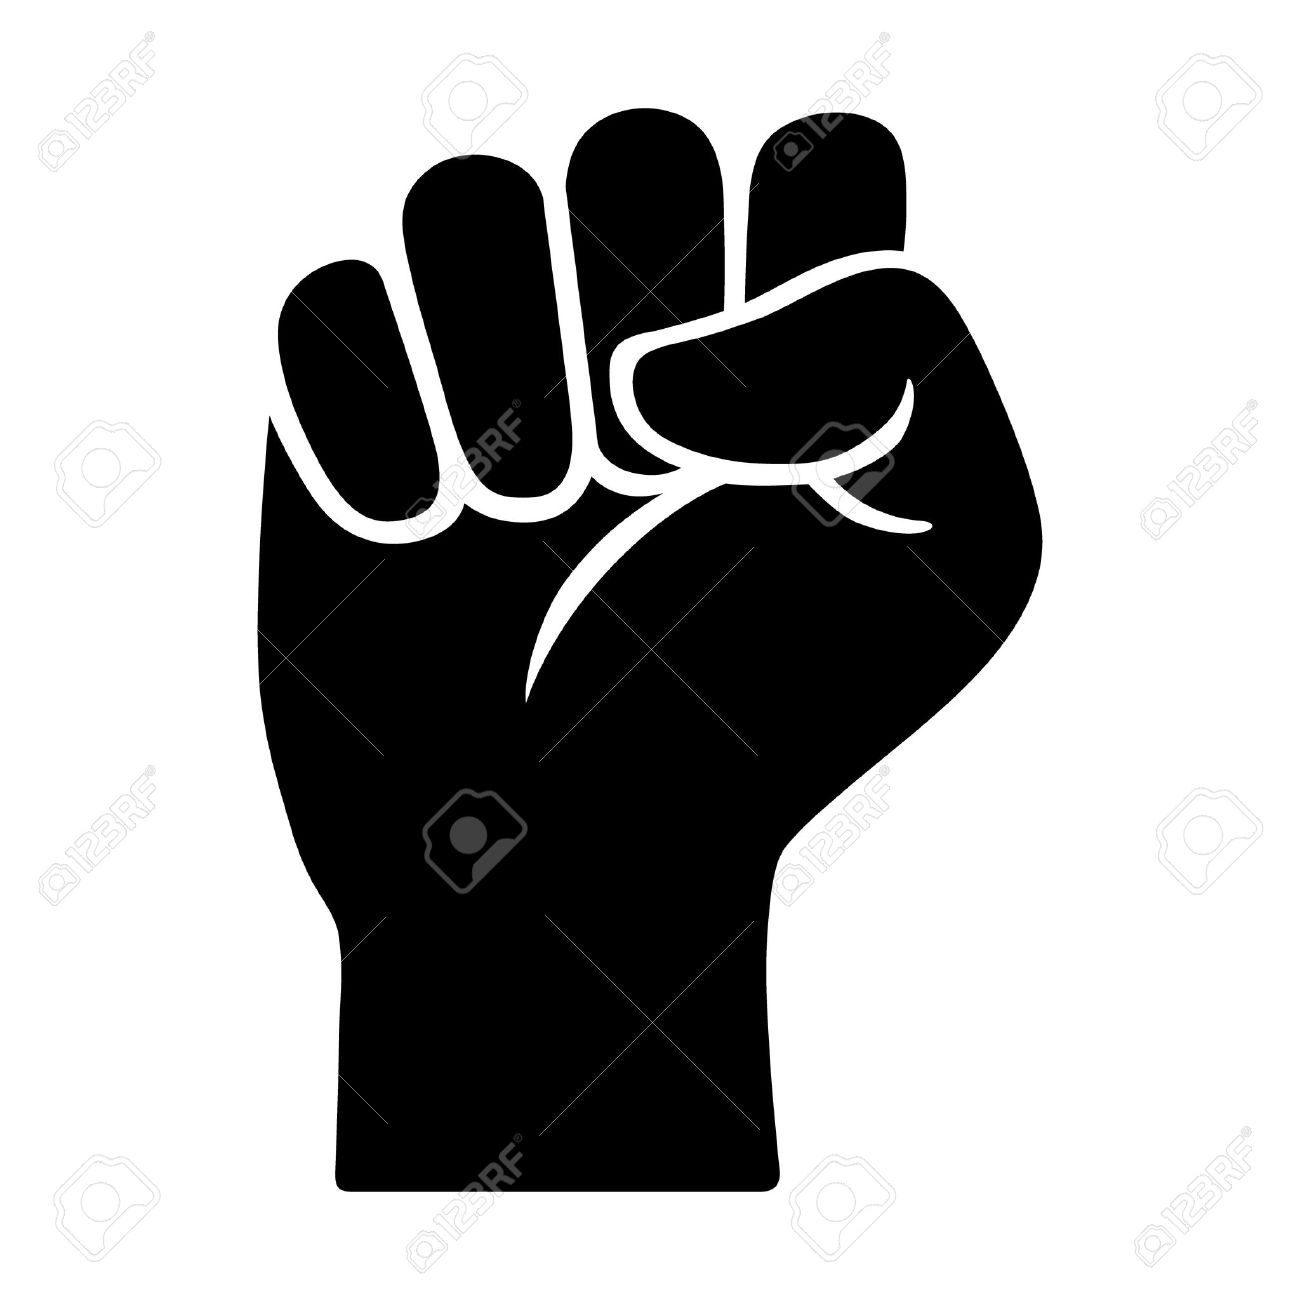 Raised Fist Symbol Of Victory Strength Power And Solidarity